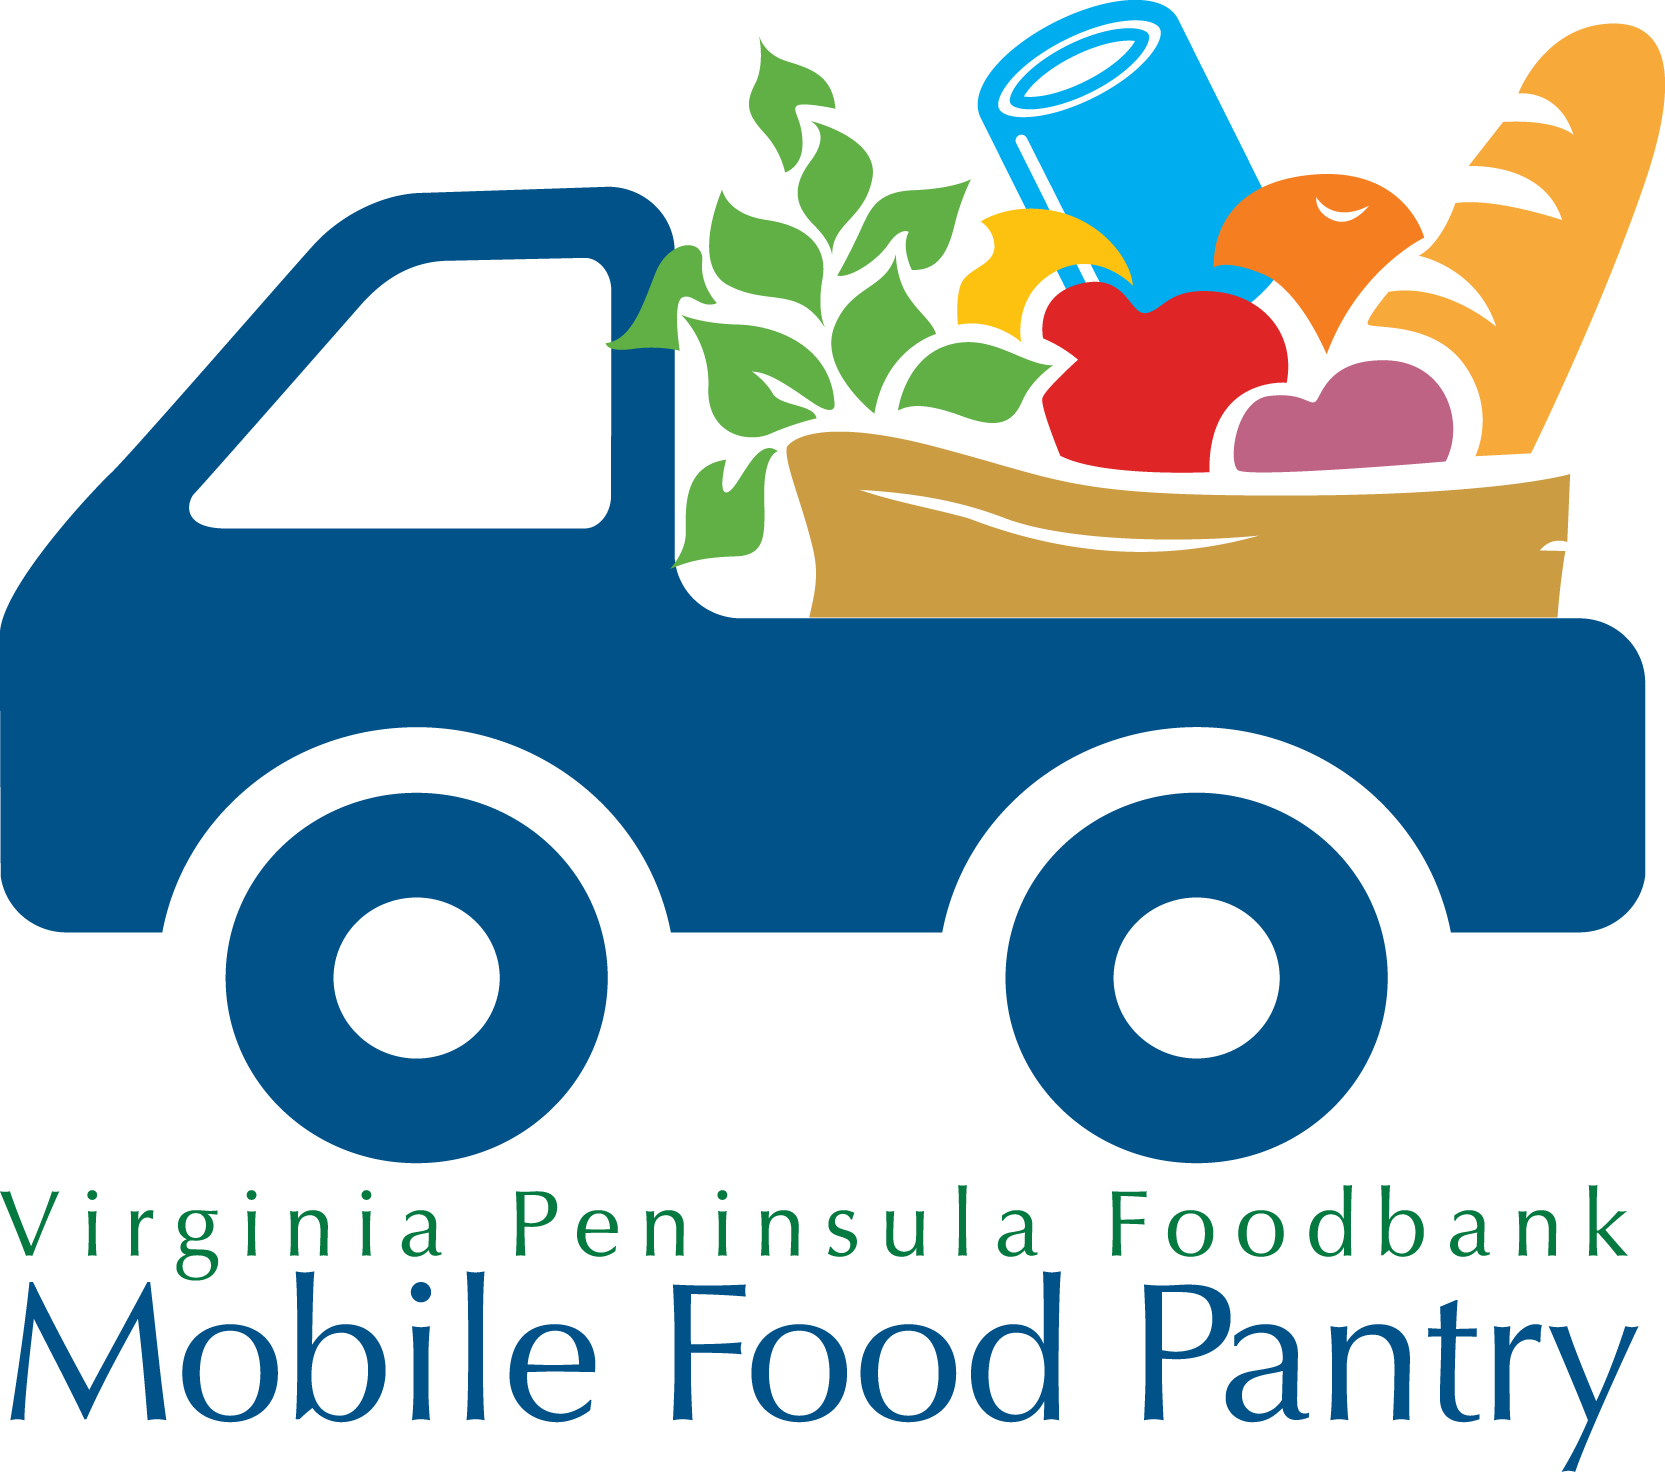 Donation clipart food pantry donation. Bank free download best